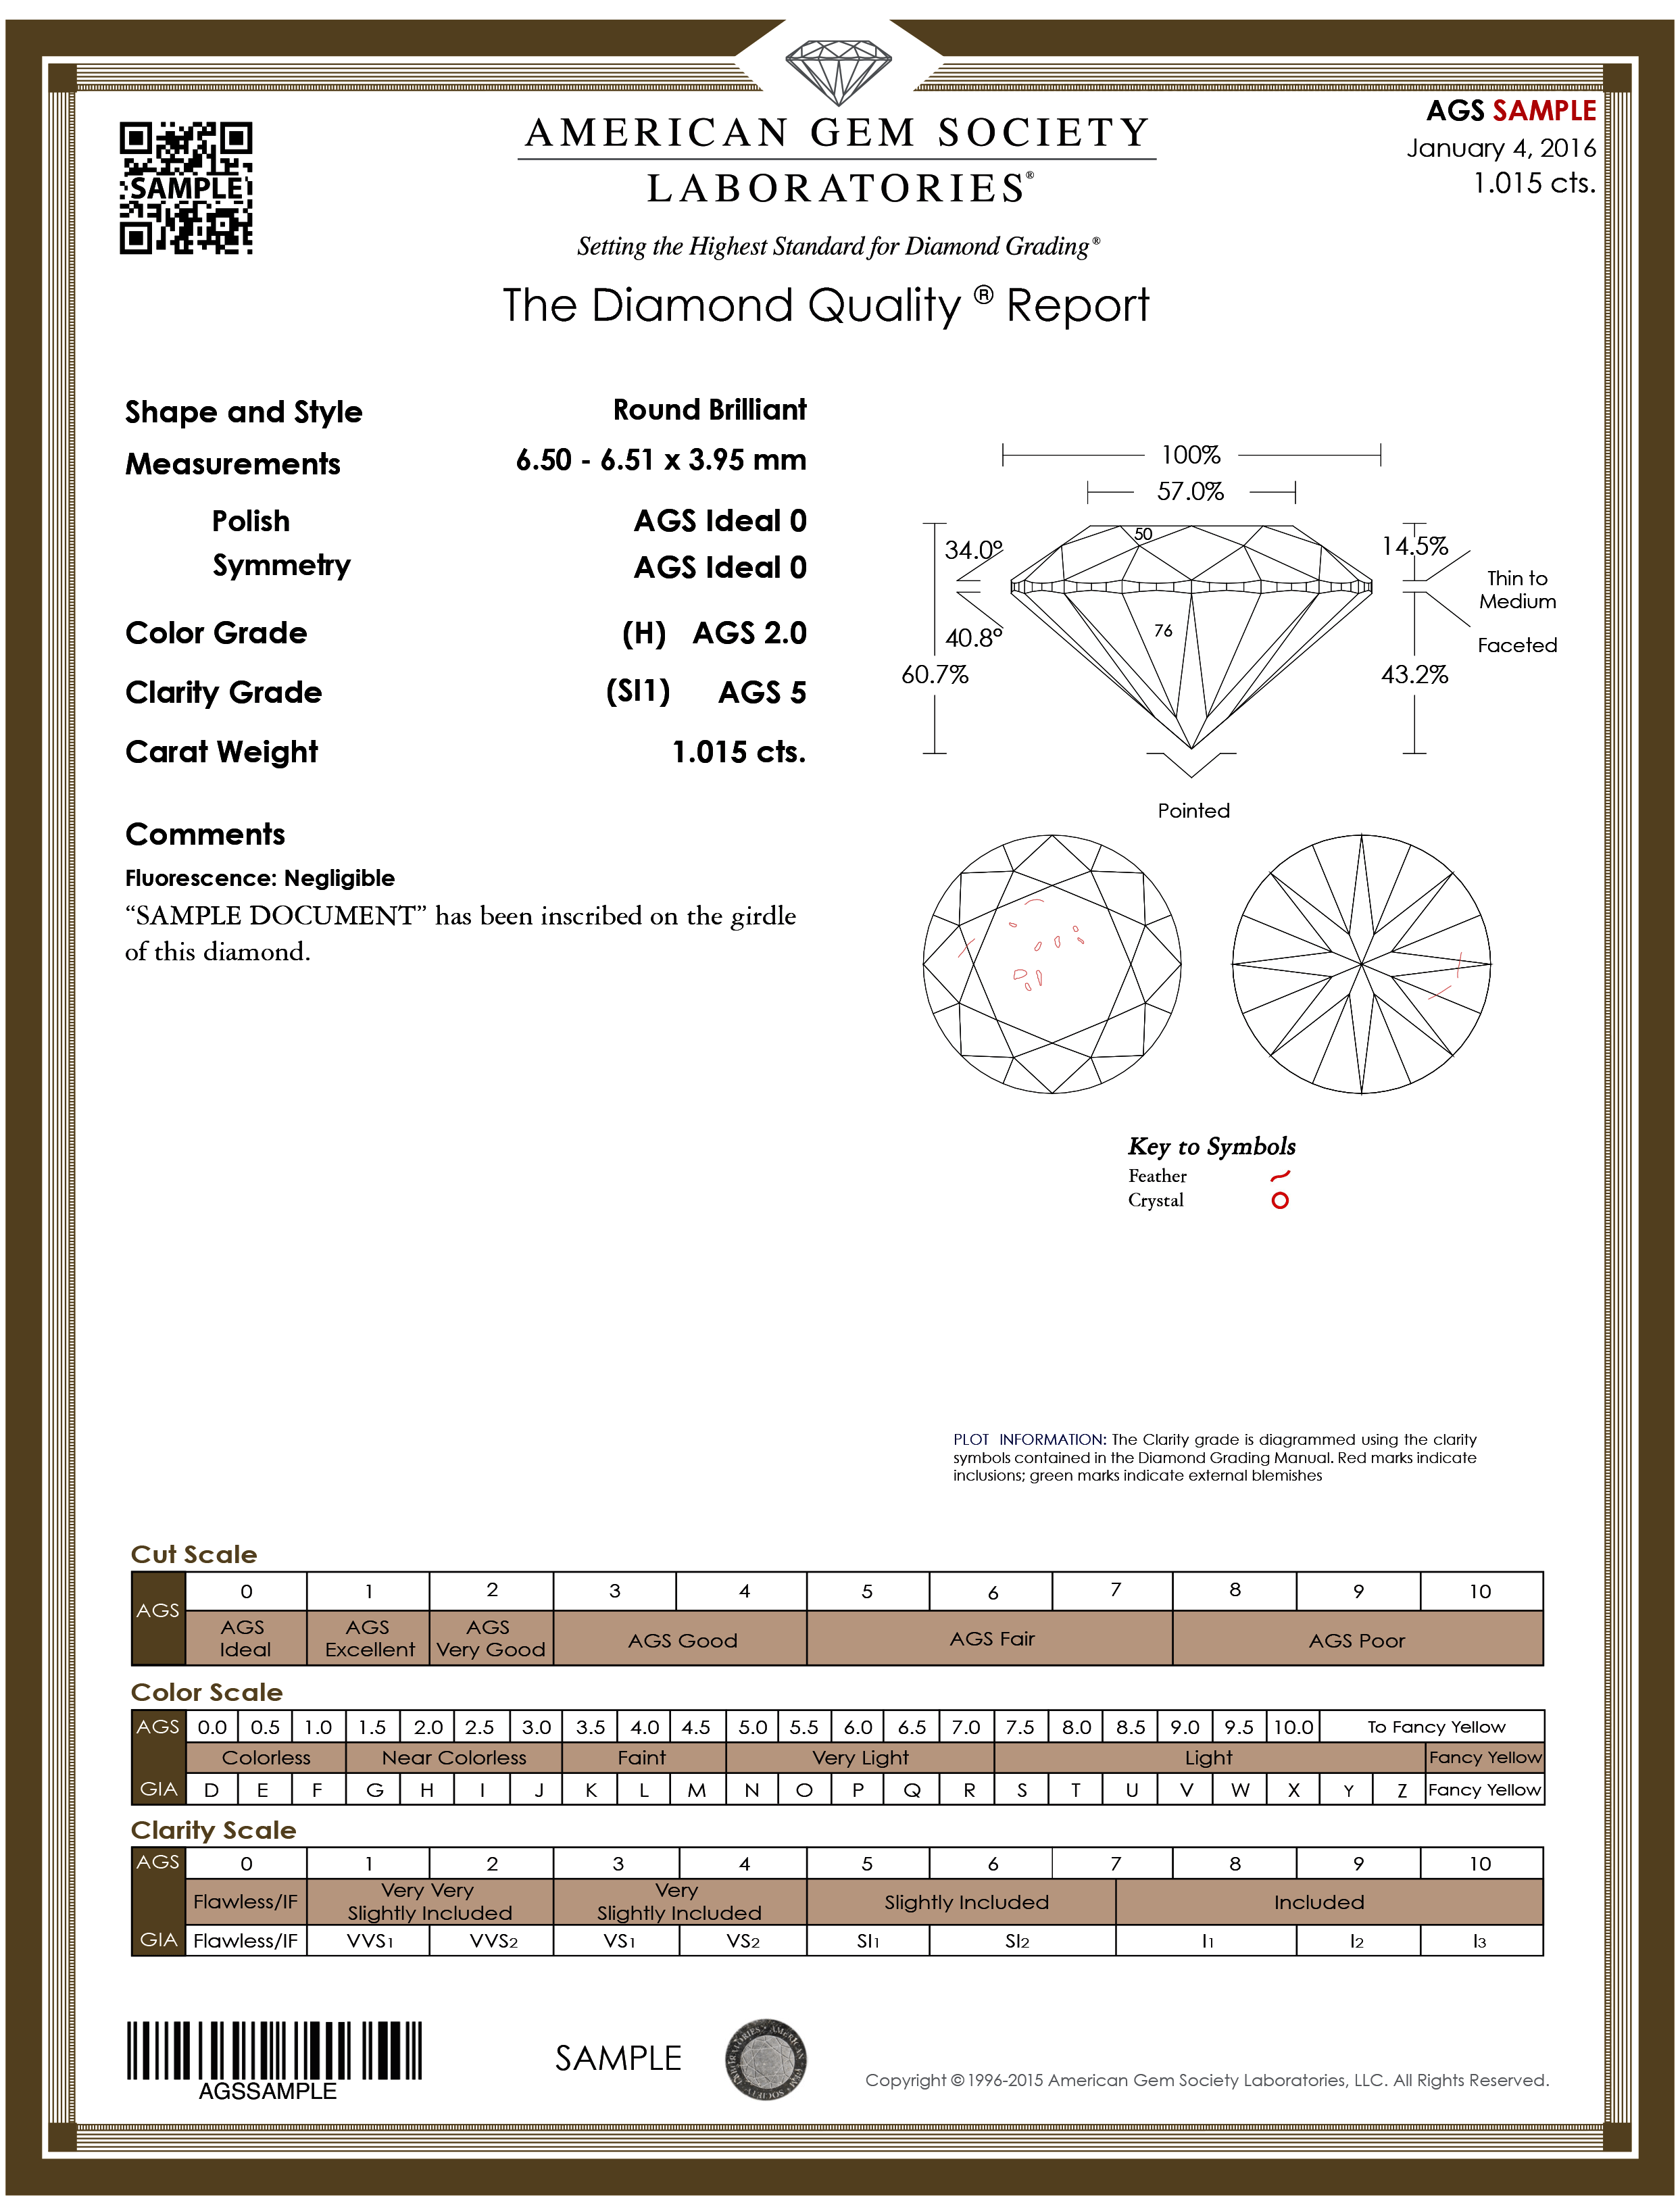 AGS Gold Diamond Quality Report Sample